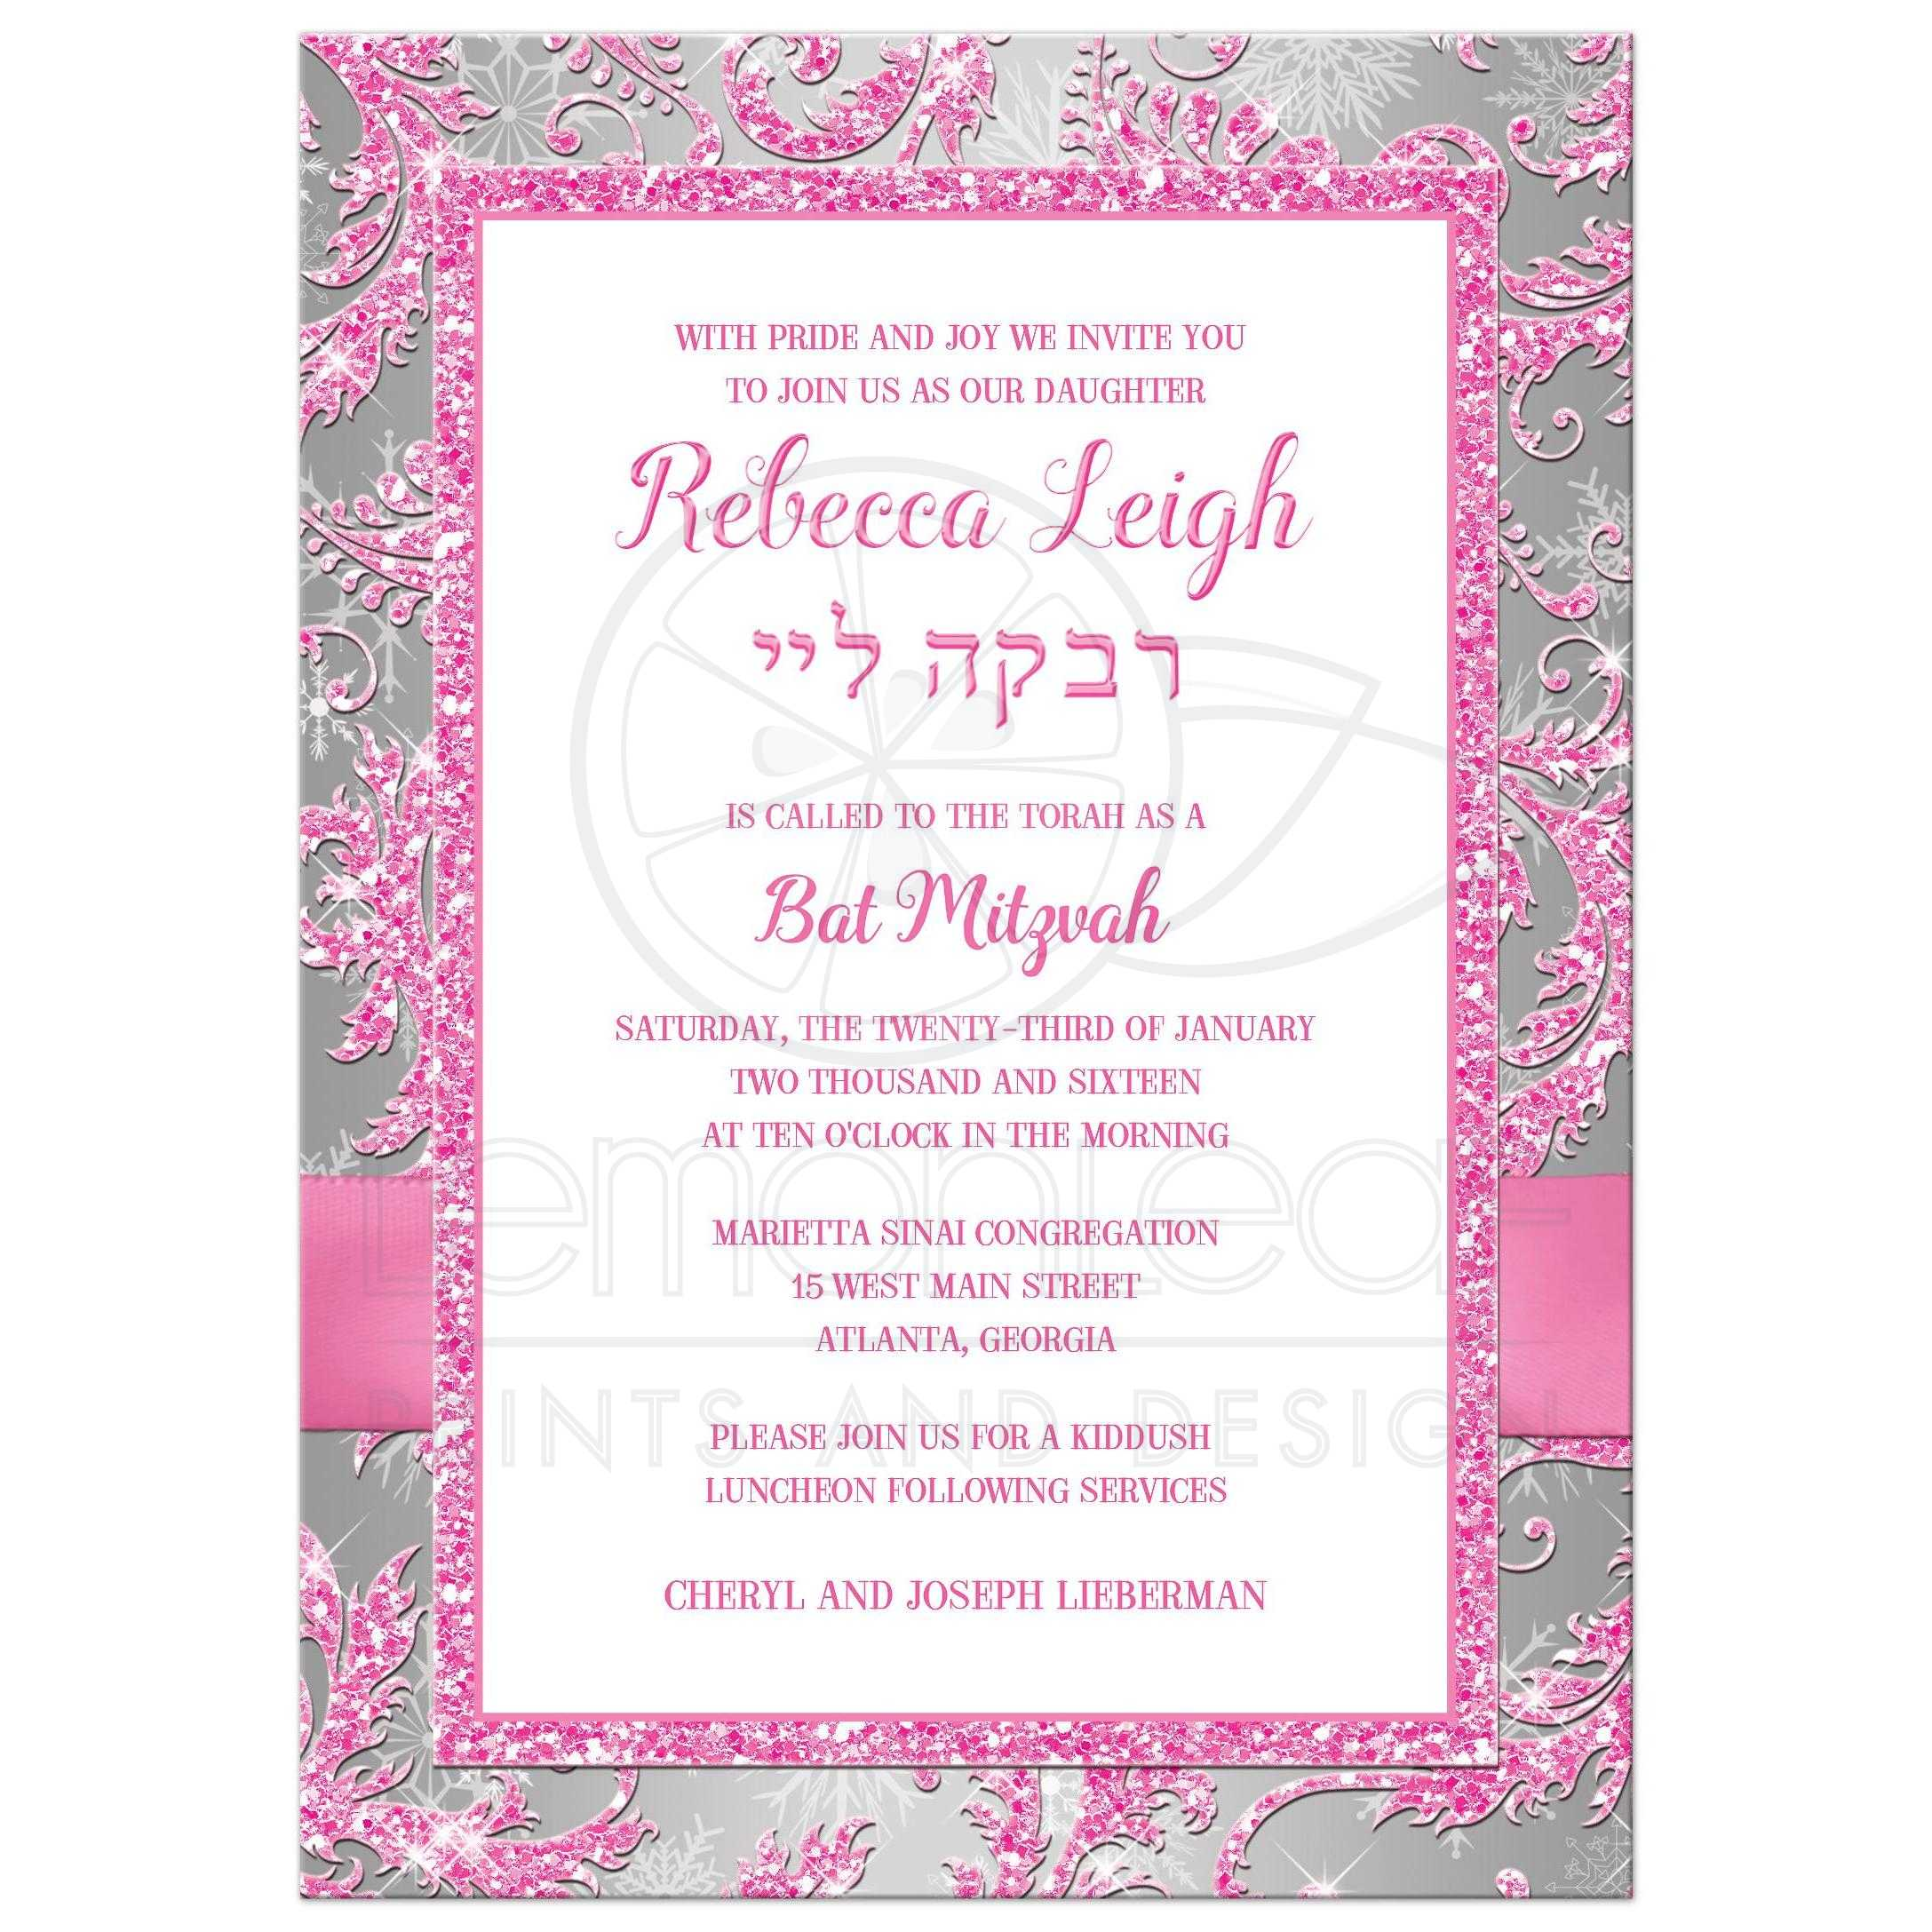 Bat Mitzvah Invitation Ice Pink Silver White Snowflakes 3